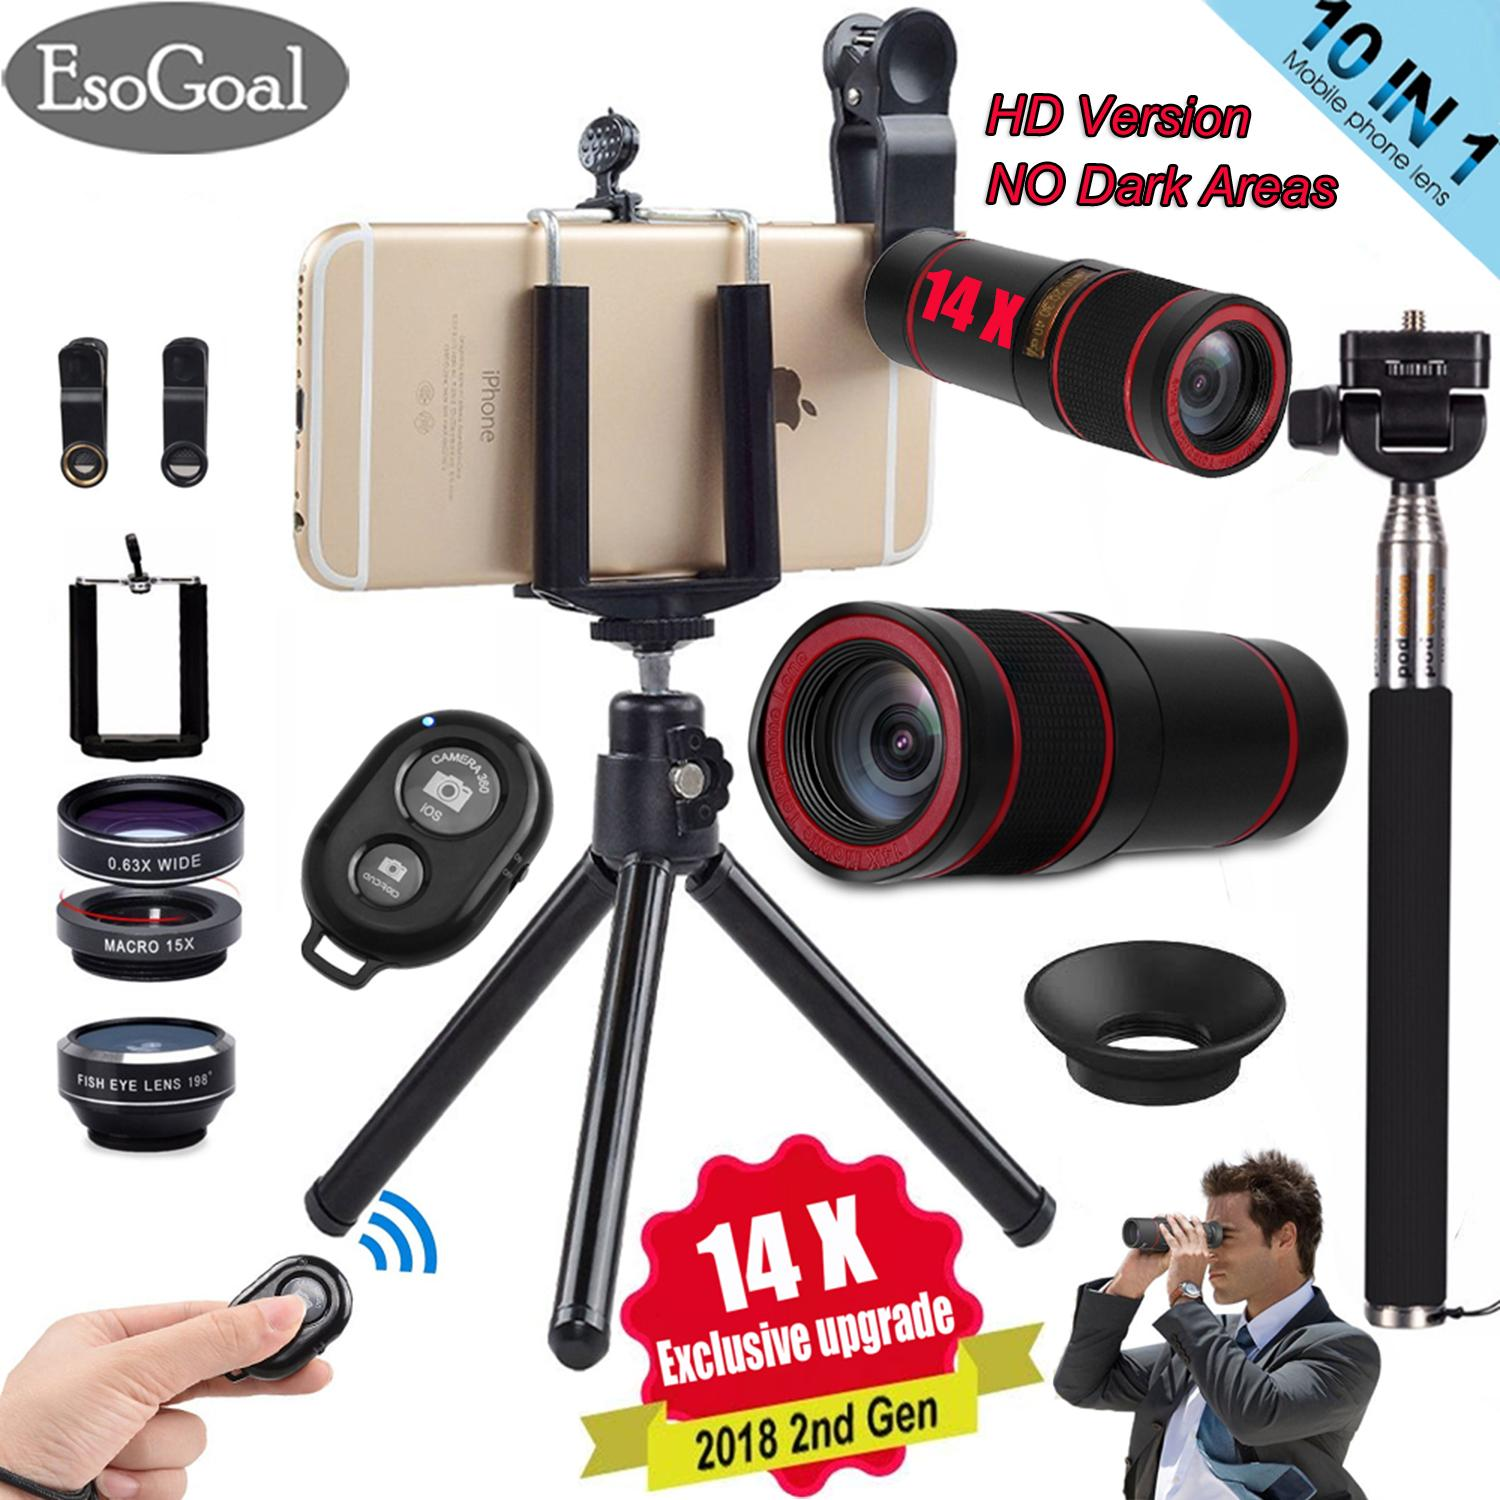 Esogoal Updated 10 In 1 14x Zoom Telephoto Lens + Fisheye + Wide Angle + Macro Lens + Selfie Stick Monopod + Bluetooth Remote Control + Mini Tripod With Phone Holder For Mobile Phones By Esogoal.